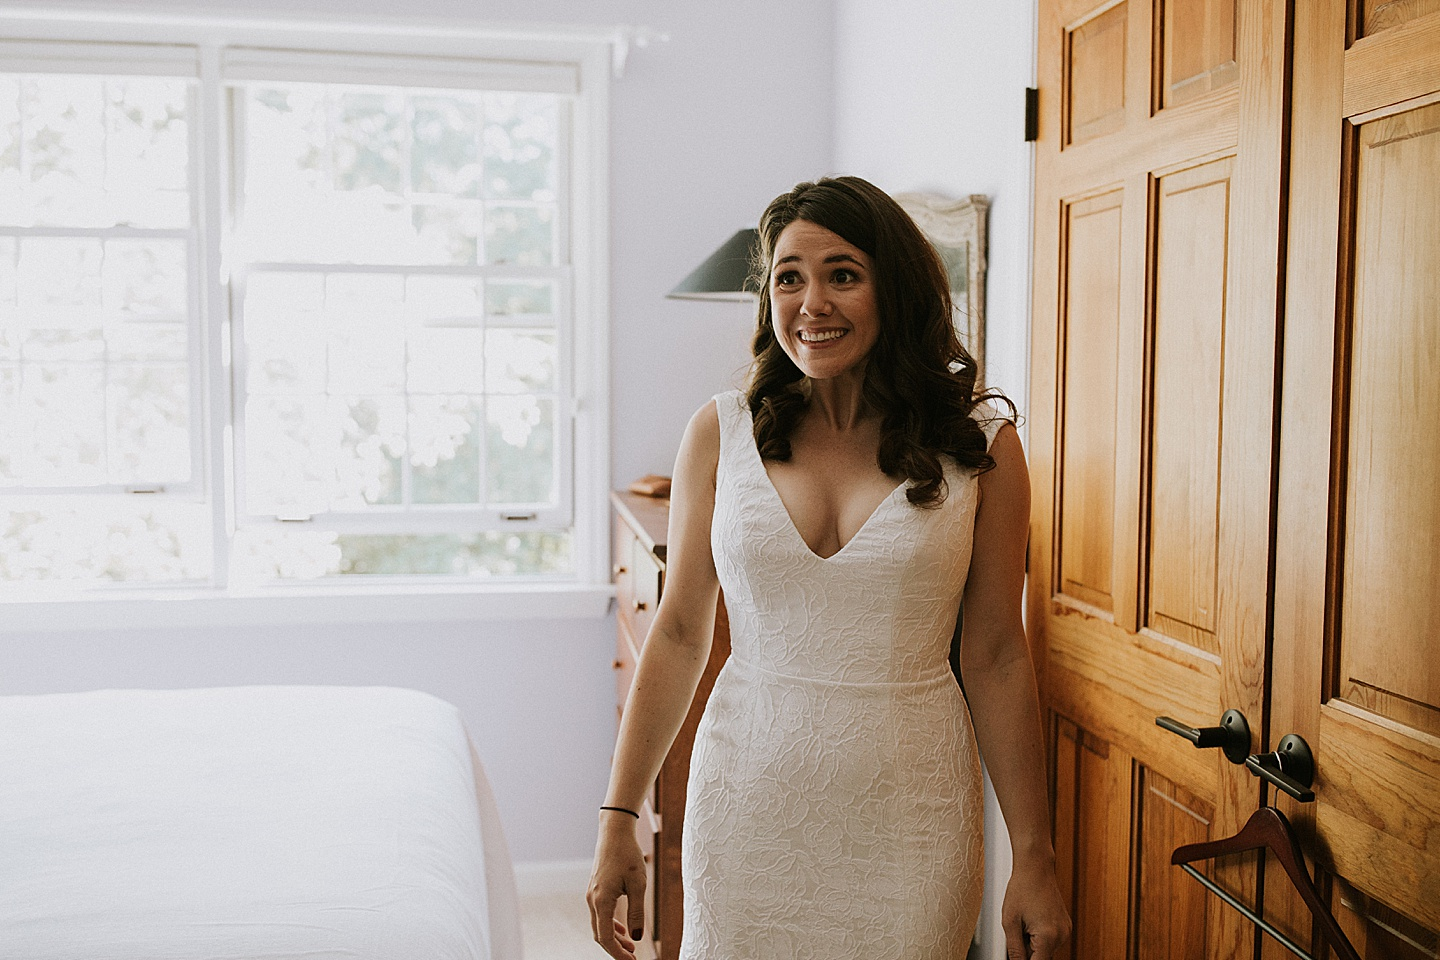 Bride getting excited before wedding